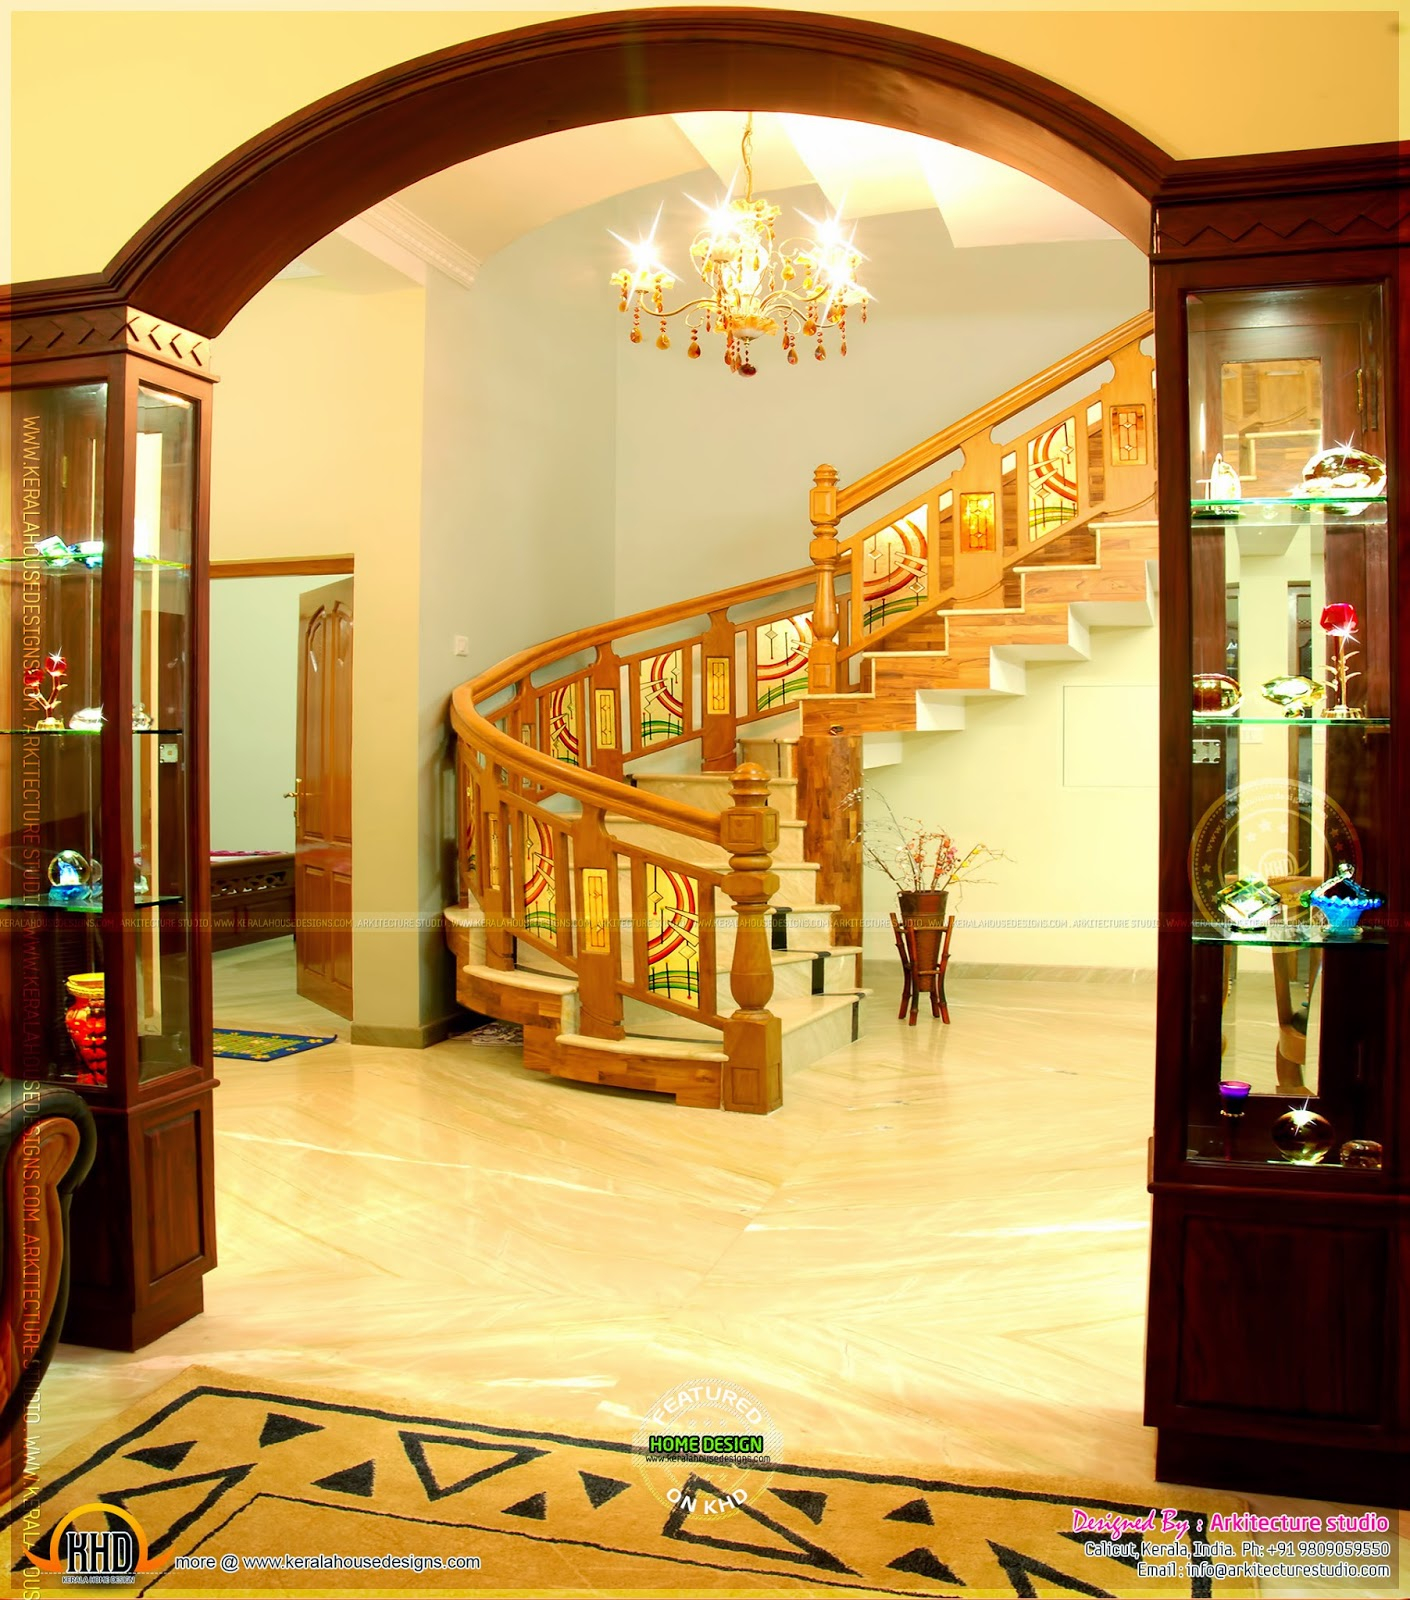 Real house in kerala with interior photos kerala home for Kerala home interior designs photos